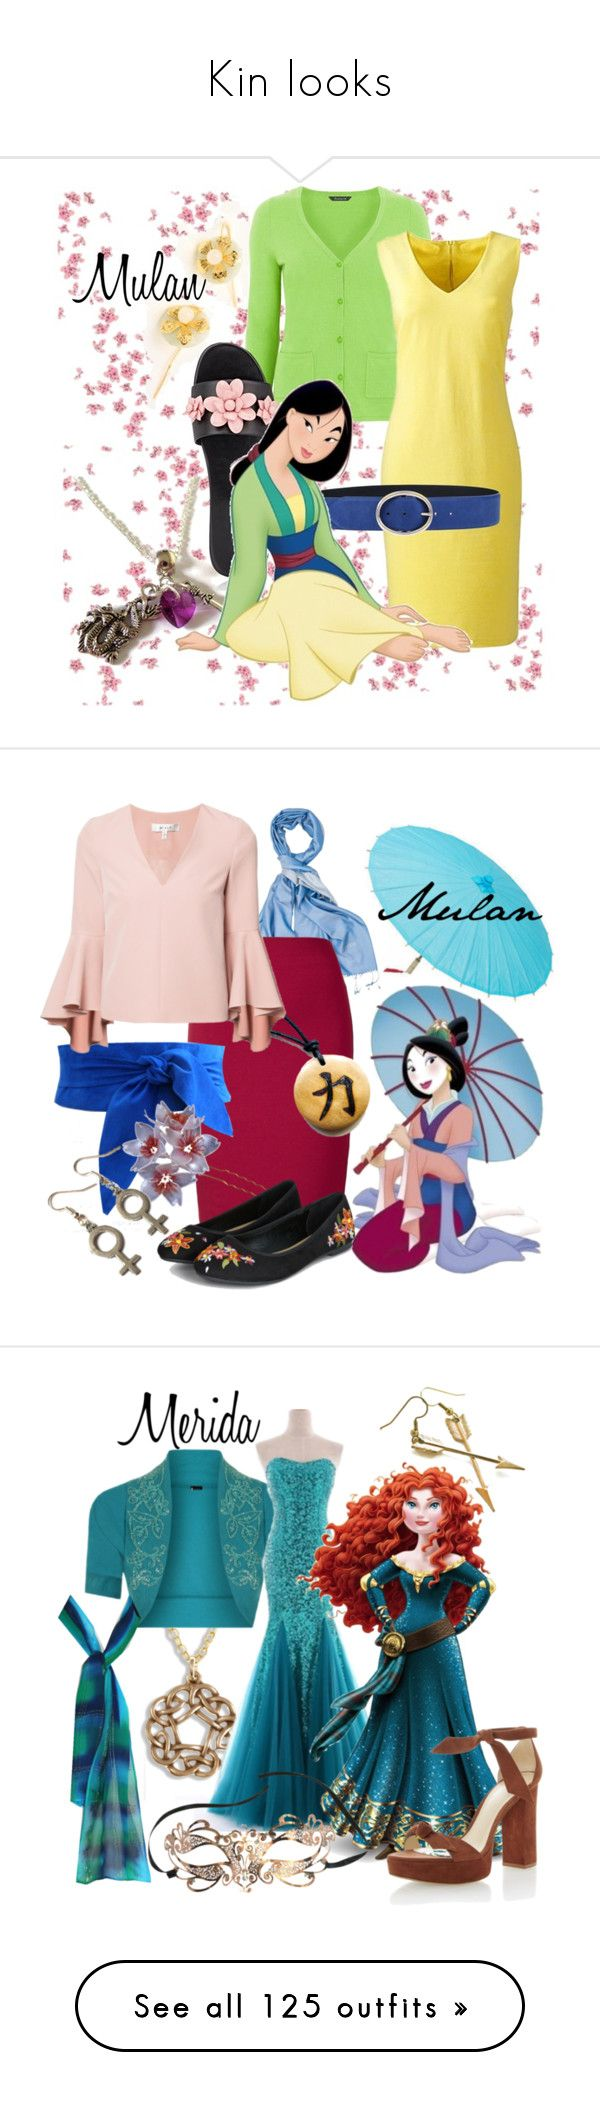 """""""Kin looks"""" by apocalypticcyberpunk ❤ liked on Polyvore featuring Orciani, Prada, Disney, disney, disneybound, Winser London, Milly, MoMo, Merida and Masquerade"""